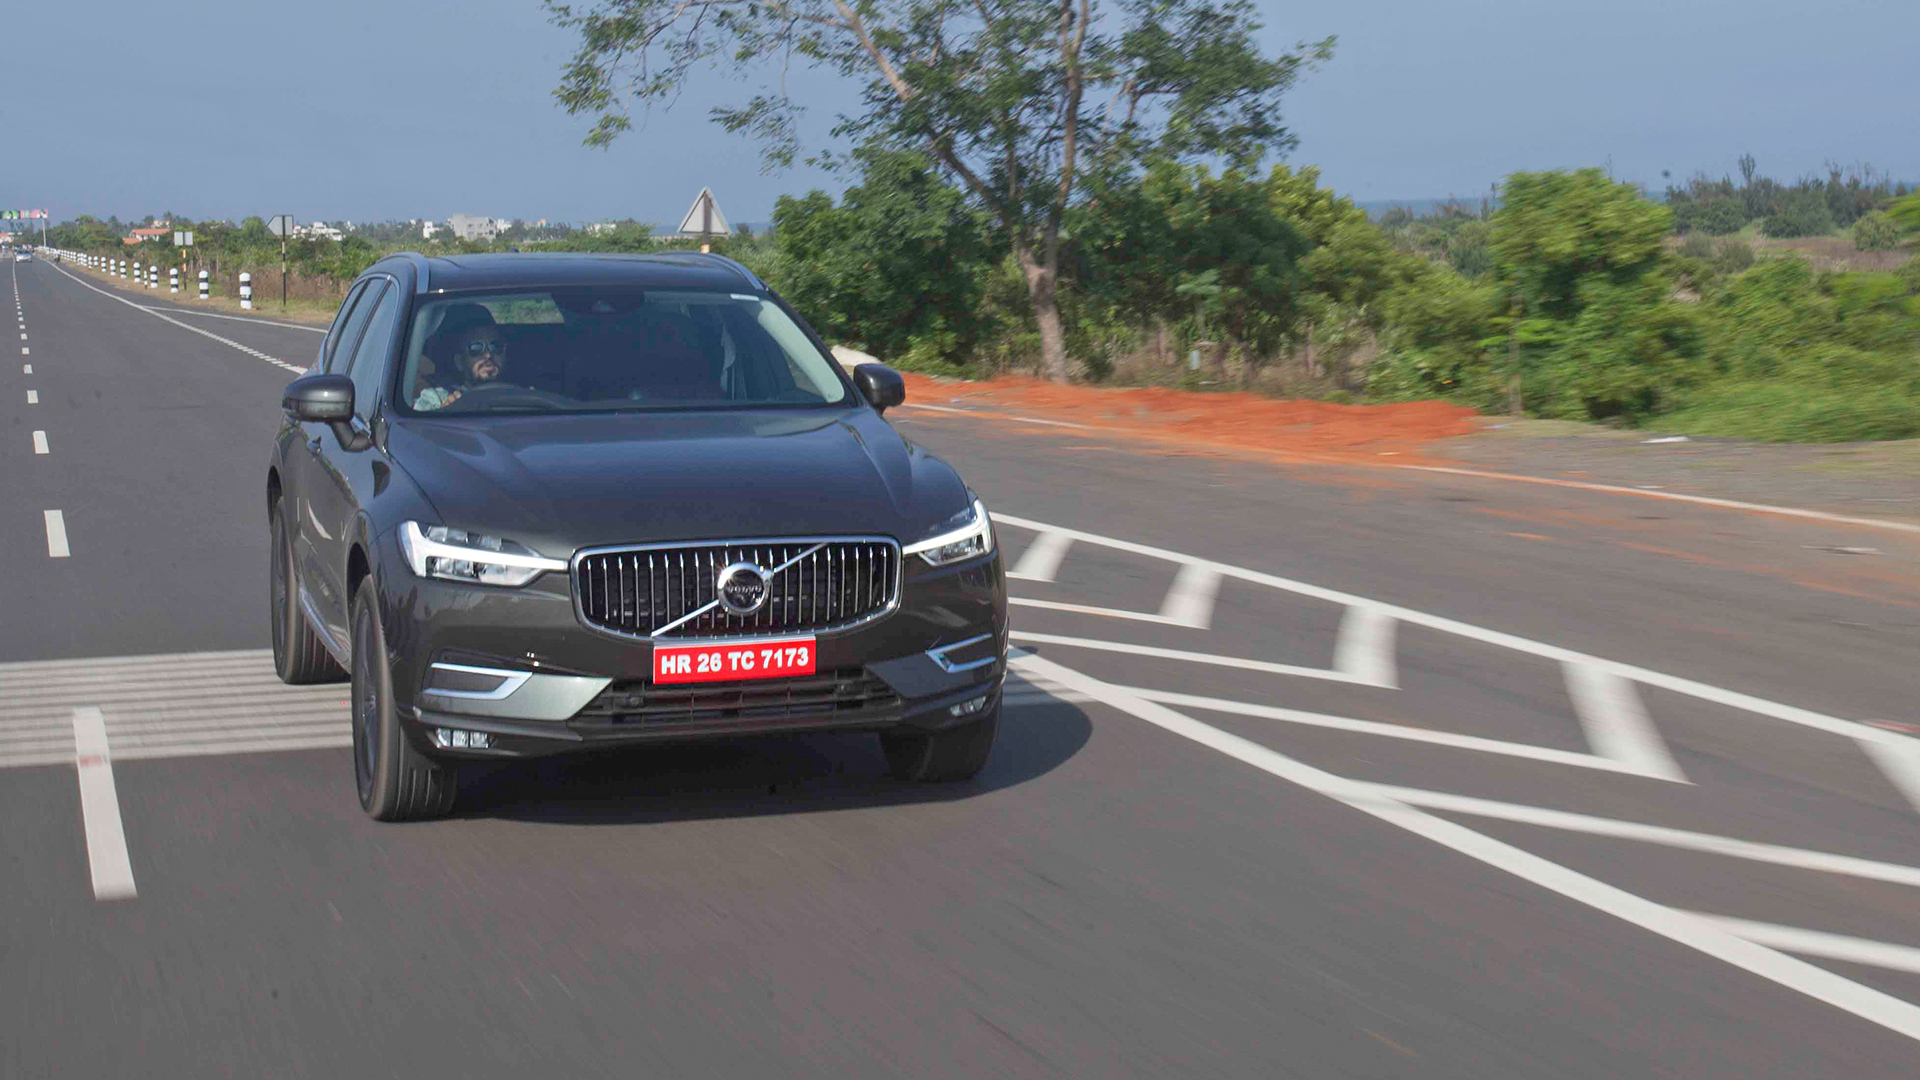 Volvo XC60 2018 Inscription D5 - Price, Mileage, Reviews